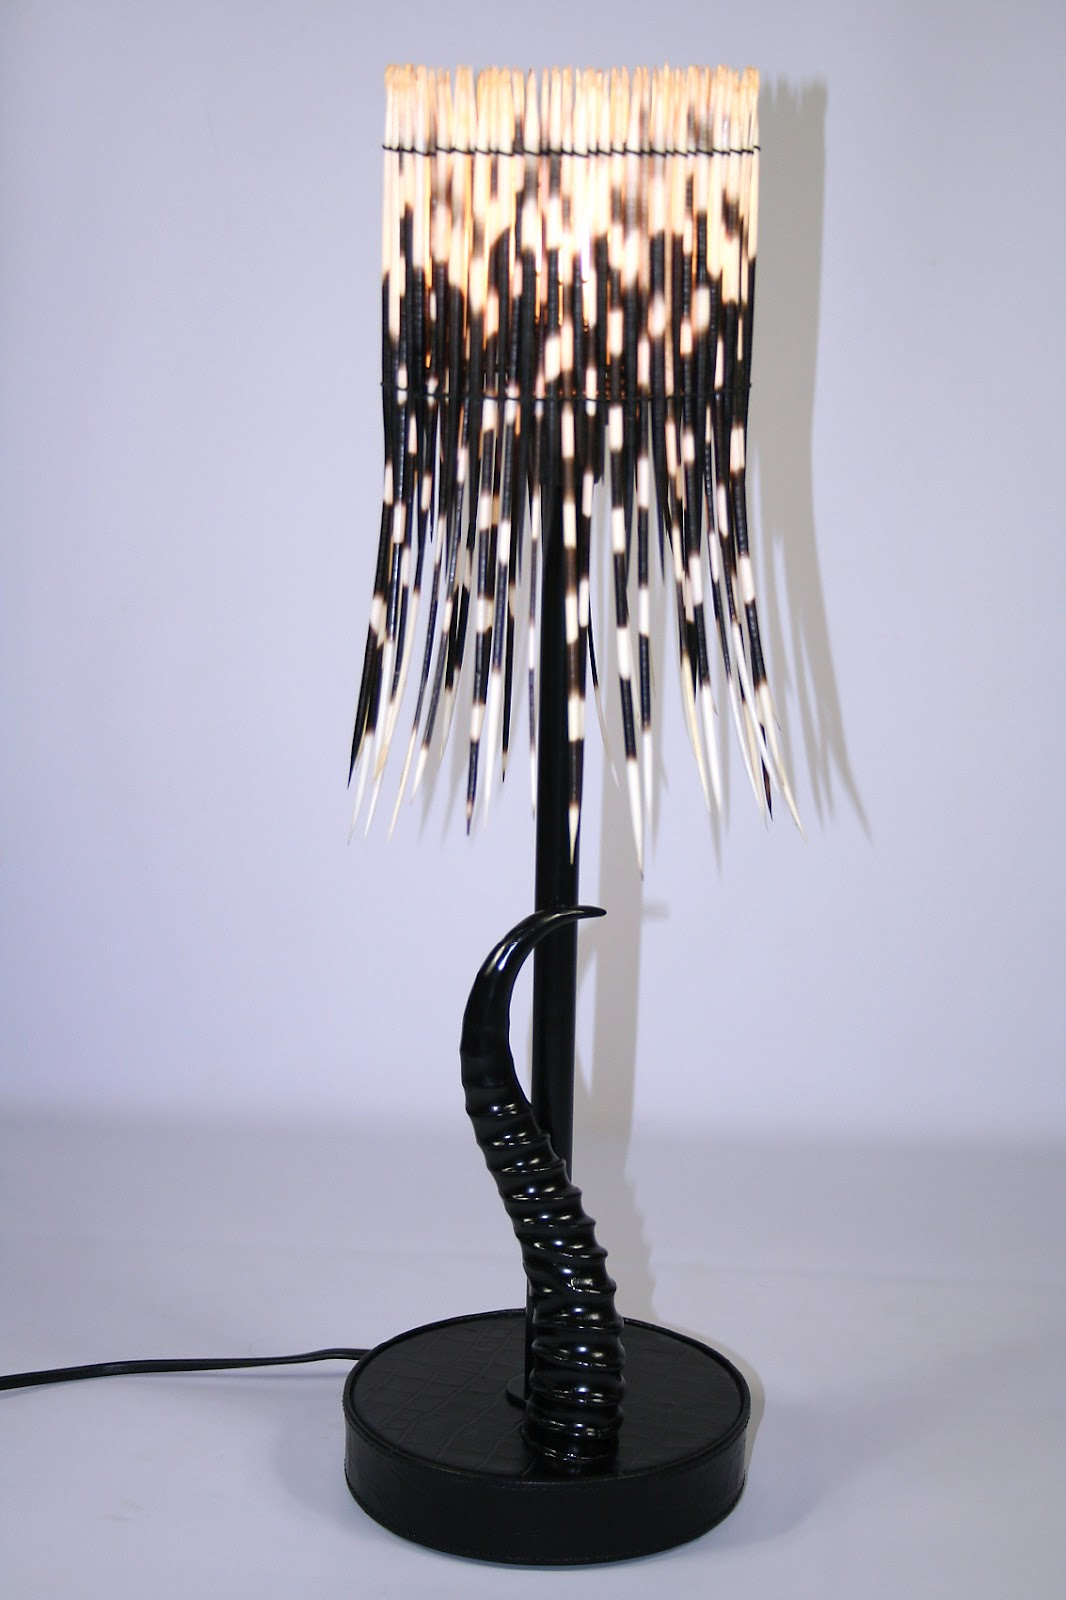 drum porcupine quill xsmall shade and black springbok horn base lamp phases africa